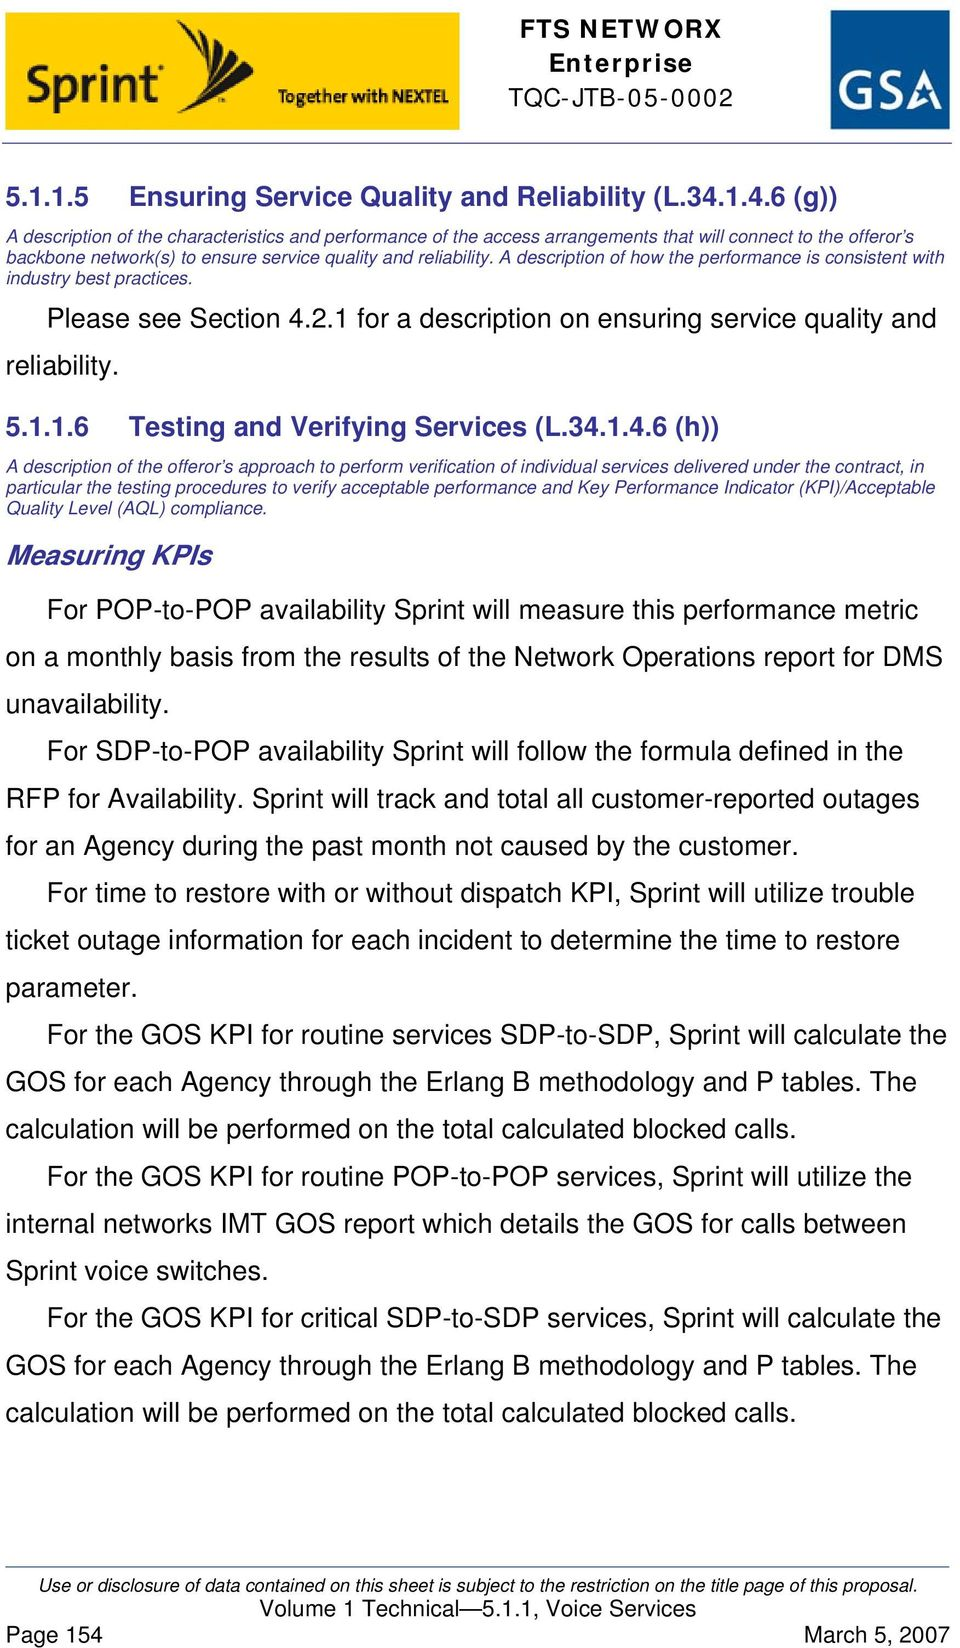 A description of how the performance is consistent with industry best practices. Please see Section 4.2.1 for a description on ensuring service quality and reliability. 5.1.1.6 Testing and Verifying Services (L.